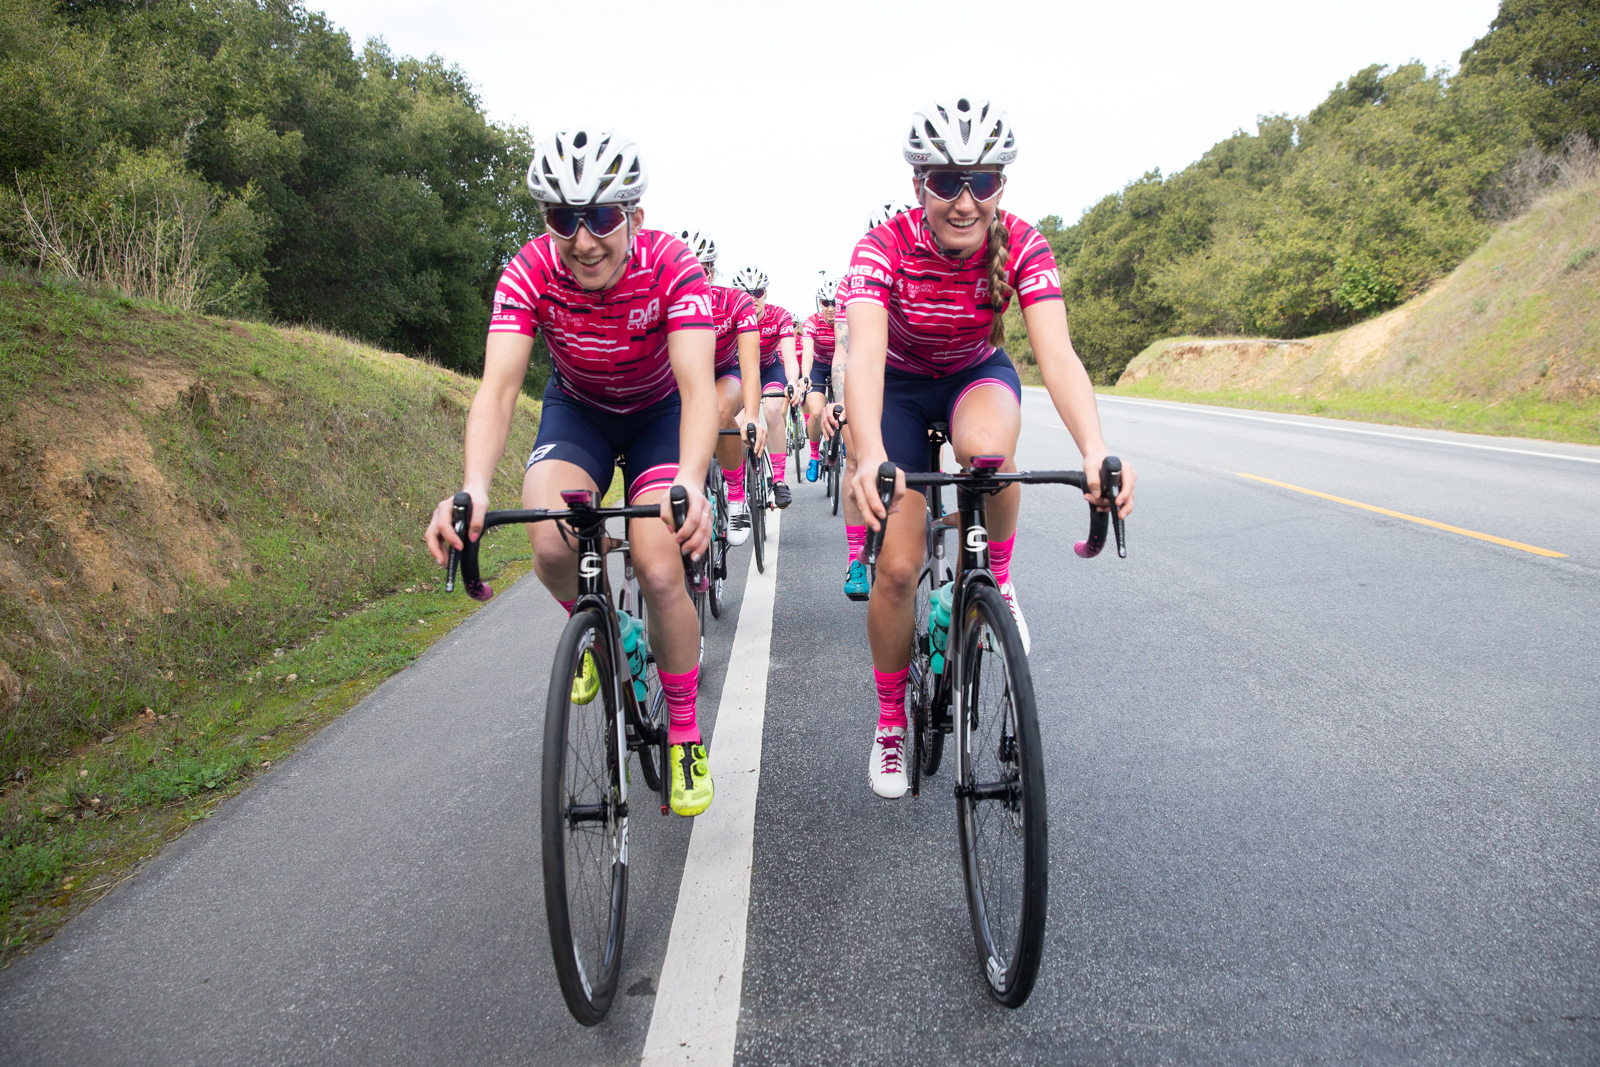 Maggie Coles-Lyster and Katie Clouse lead the team on a training ride. Photo by Catherine Fegan-Kim